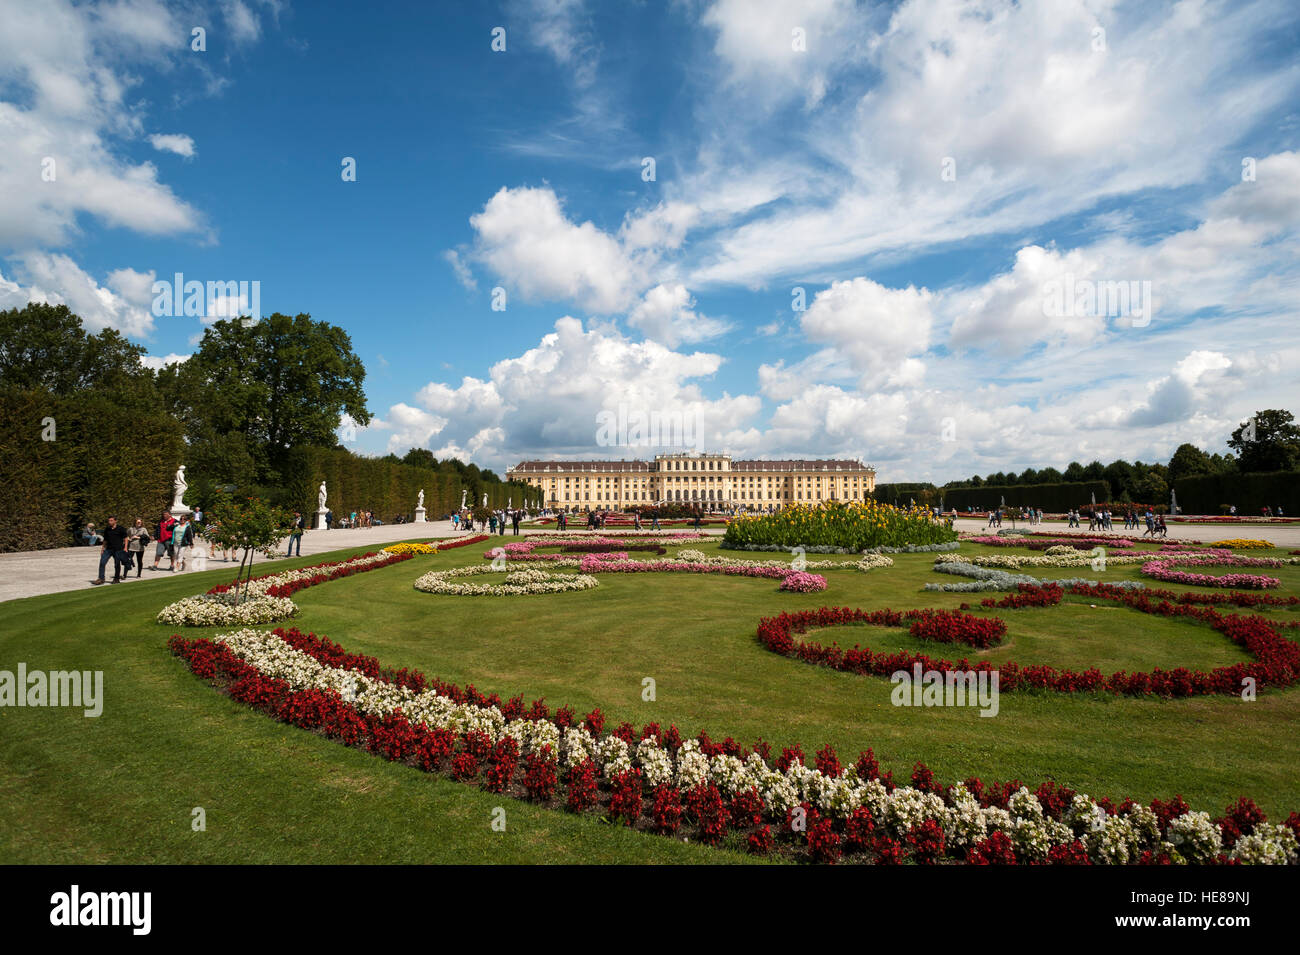 Flower bed in park, Schönbrunn Palace, Vienna, Austria - Stock Image